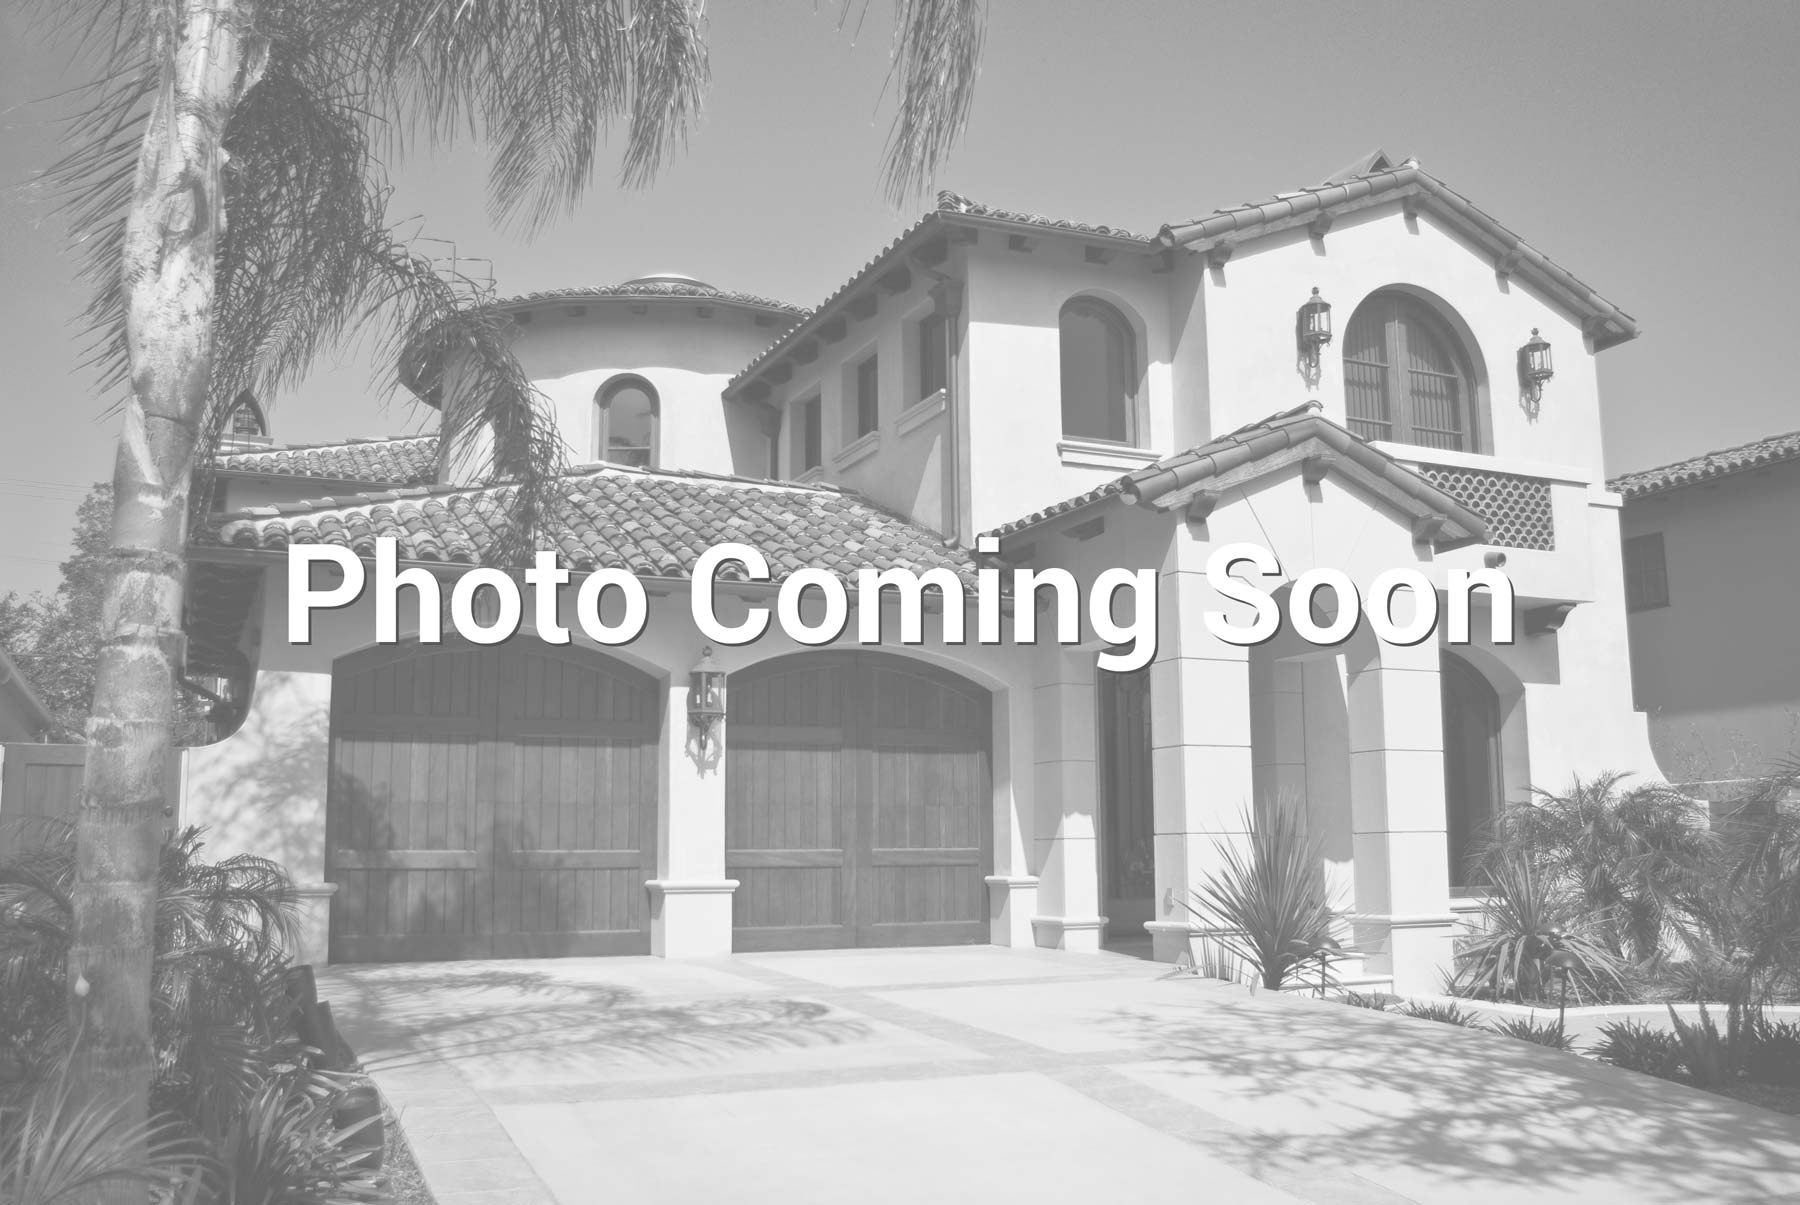 $1,550,000 - 3Br/2Ba -  for Sale in Coronado Village, Coronado